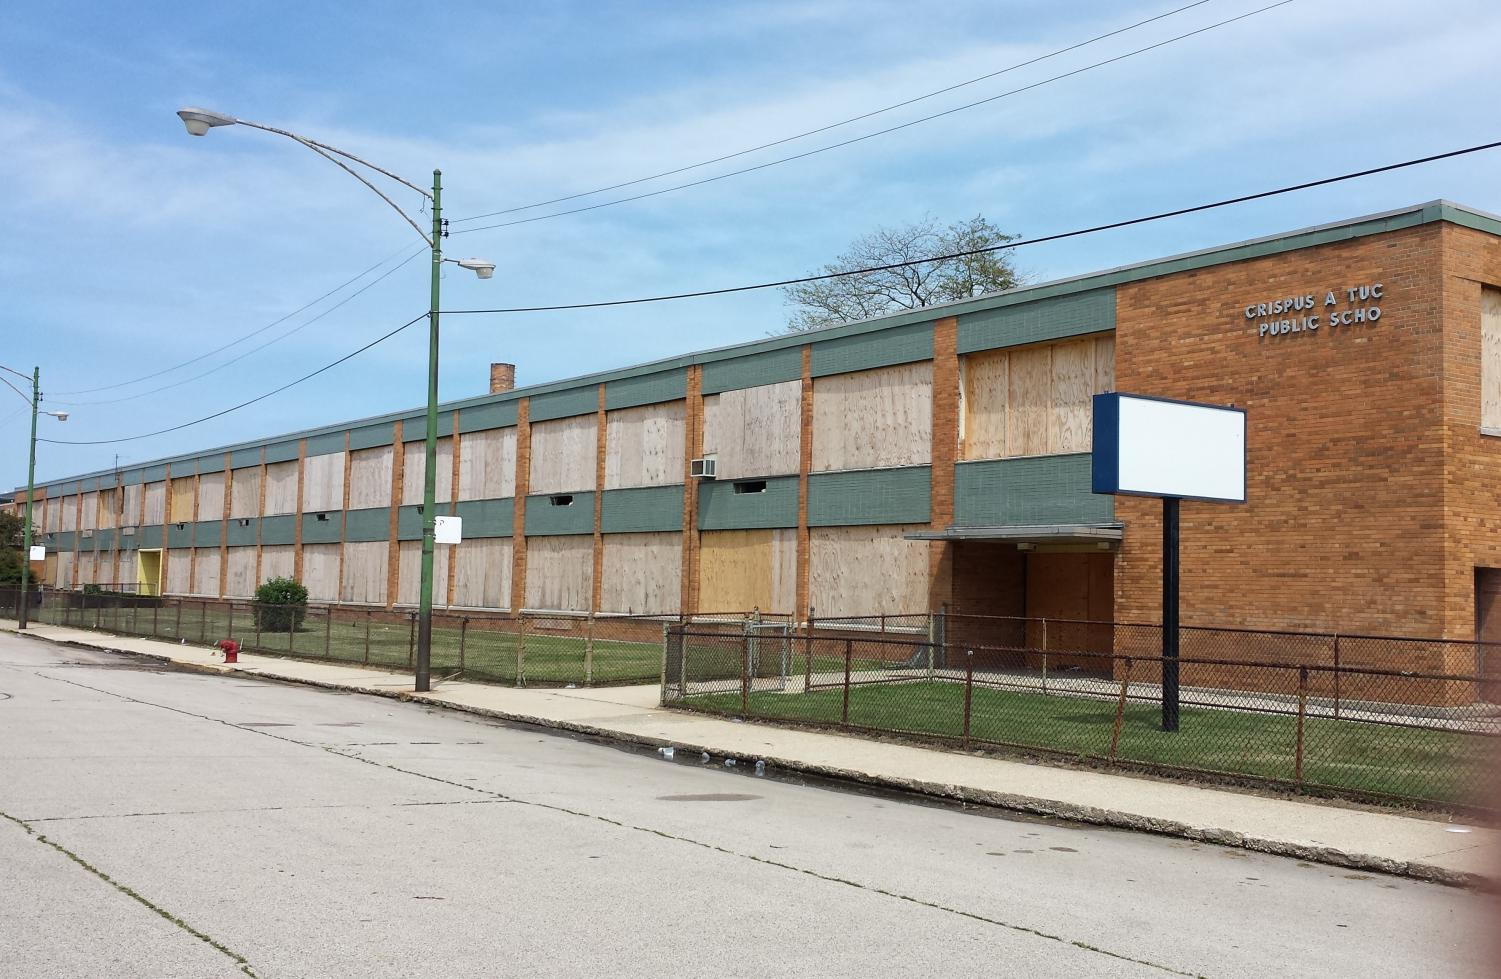 The shuttered Crispus Attucks Public School in the Bronzeville neighborhood was closed in 2008 and has remained empty ever since. (Photo courtesy of steven kevil   wikimedia commons)